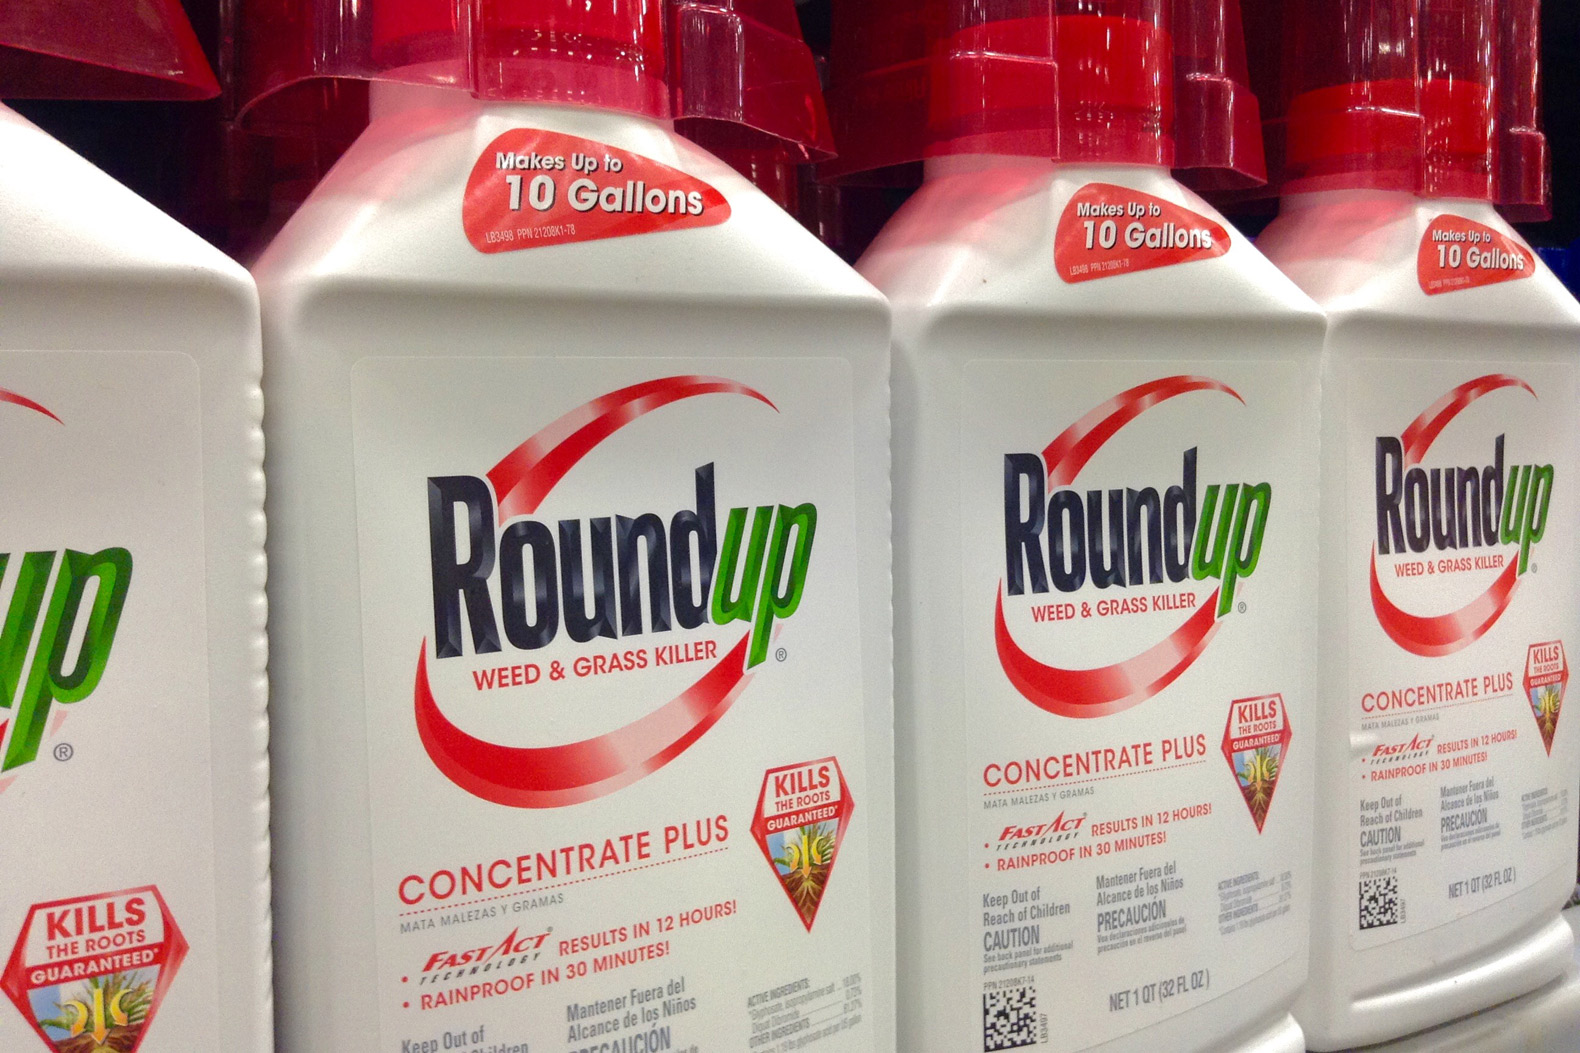 Local Clients Have Settlement Deal With Company That Makes Roundup Weed Killer